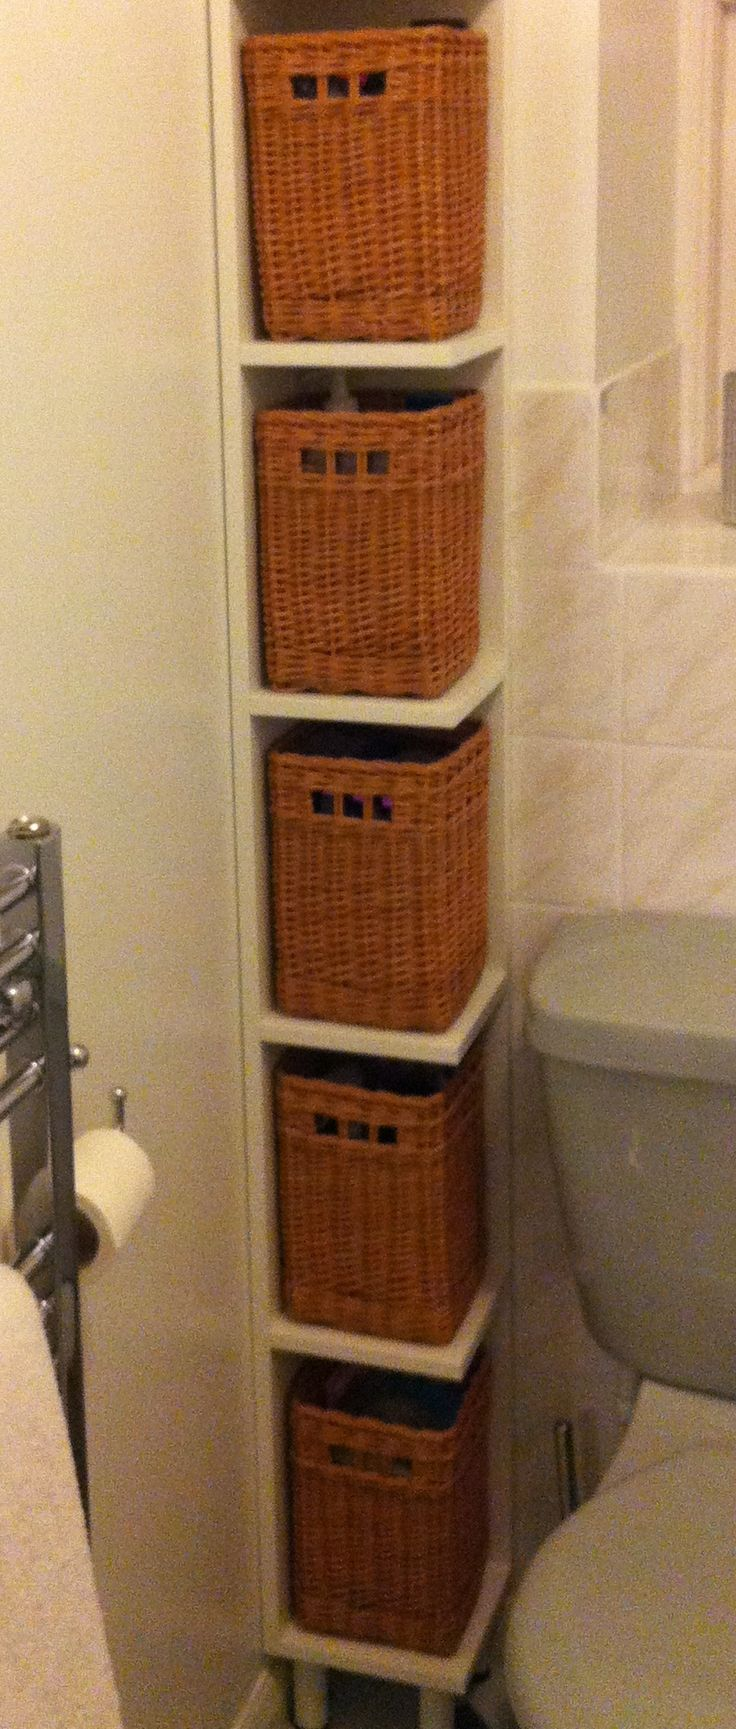 close up of the bathroom shelves with baskets. Black Bedroom Furniture Sets. Home Design Ideas